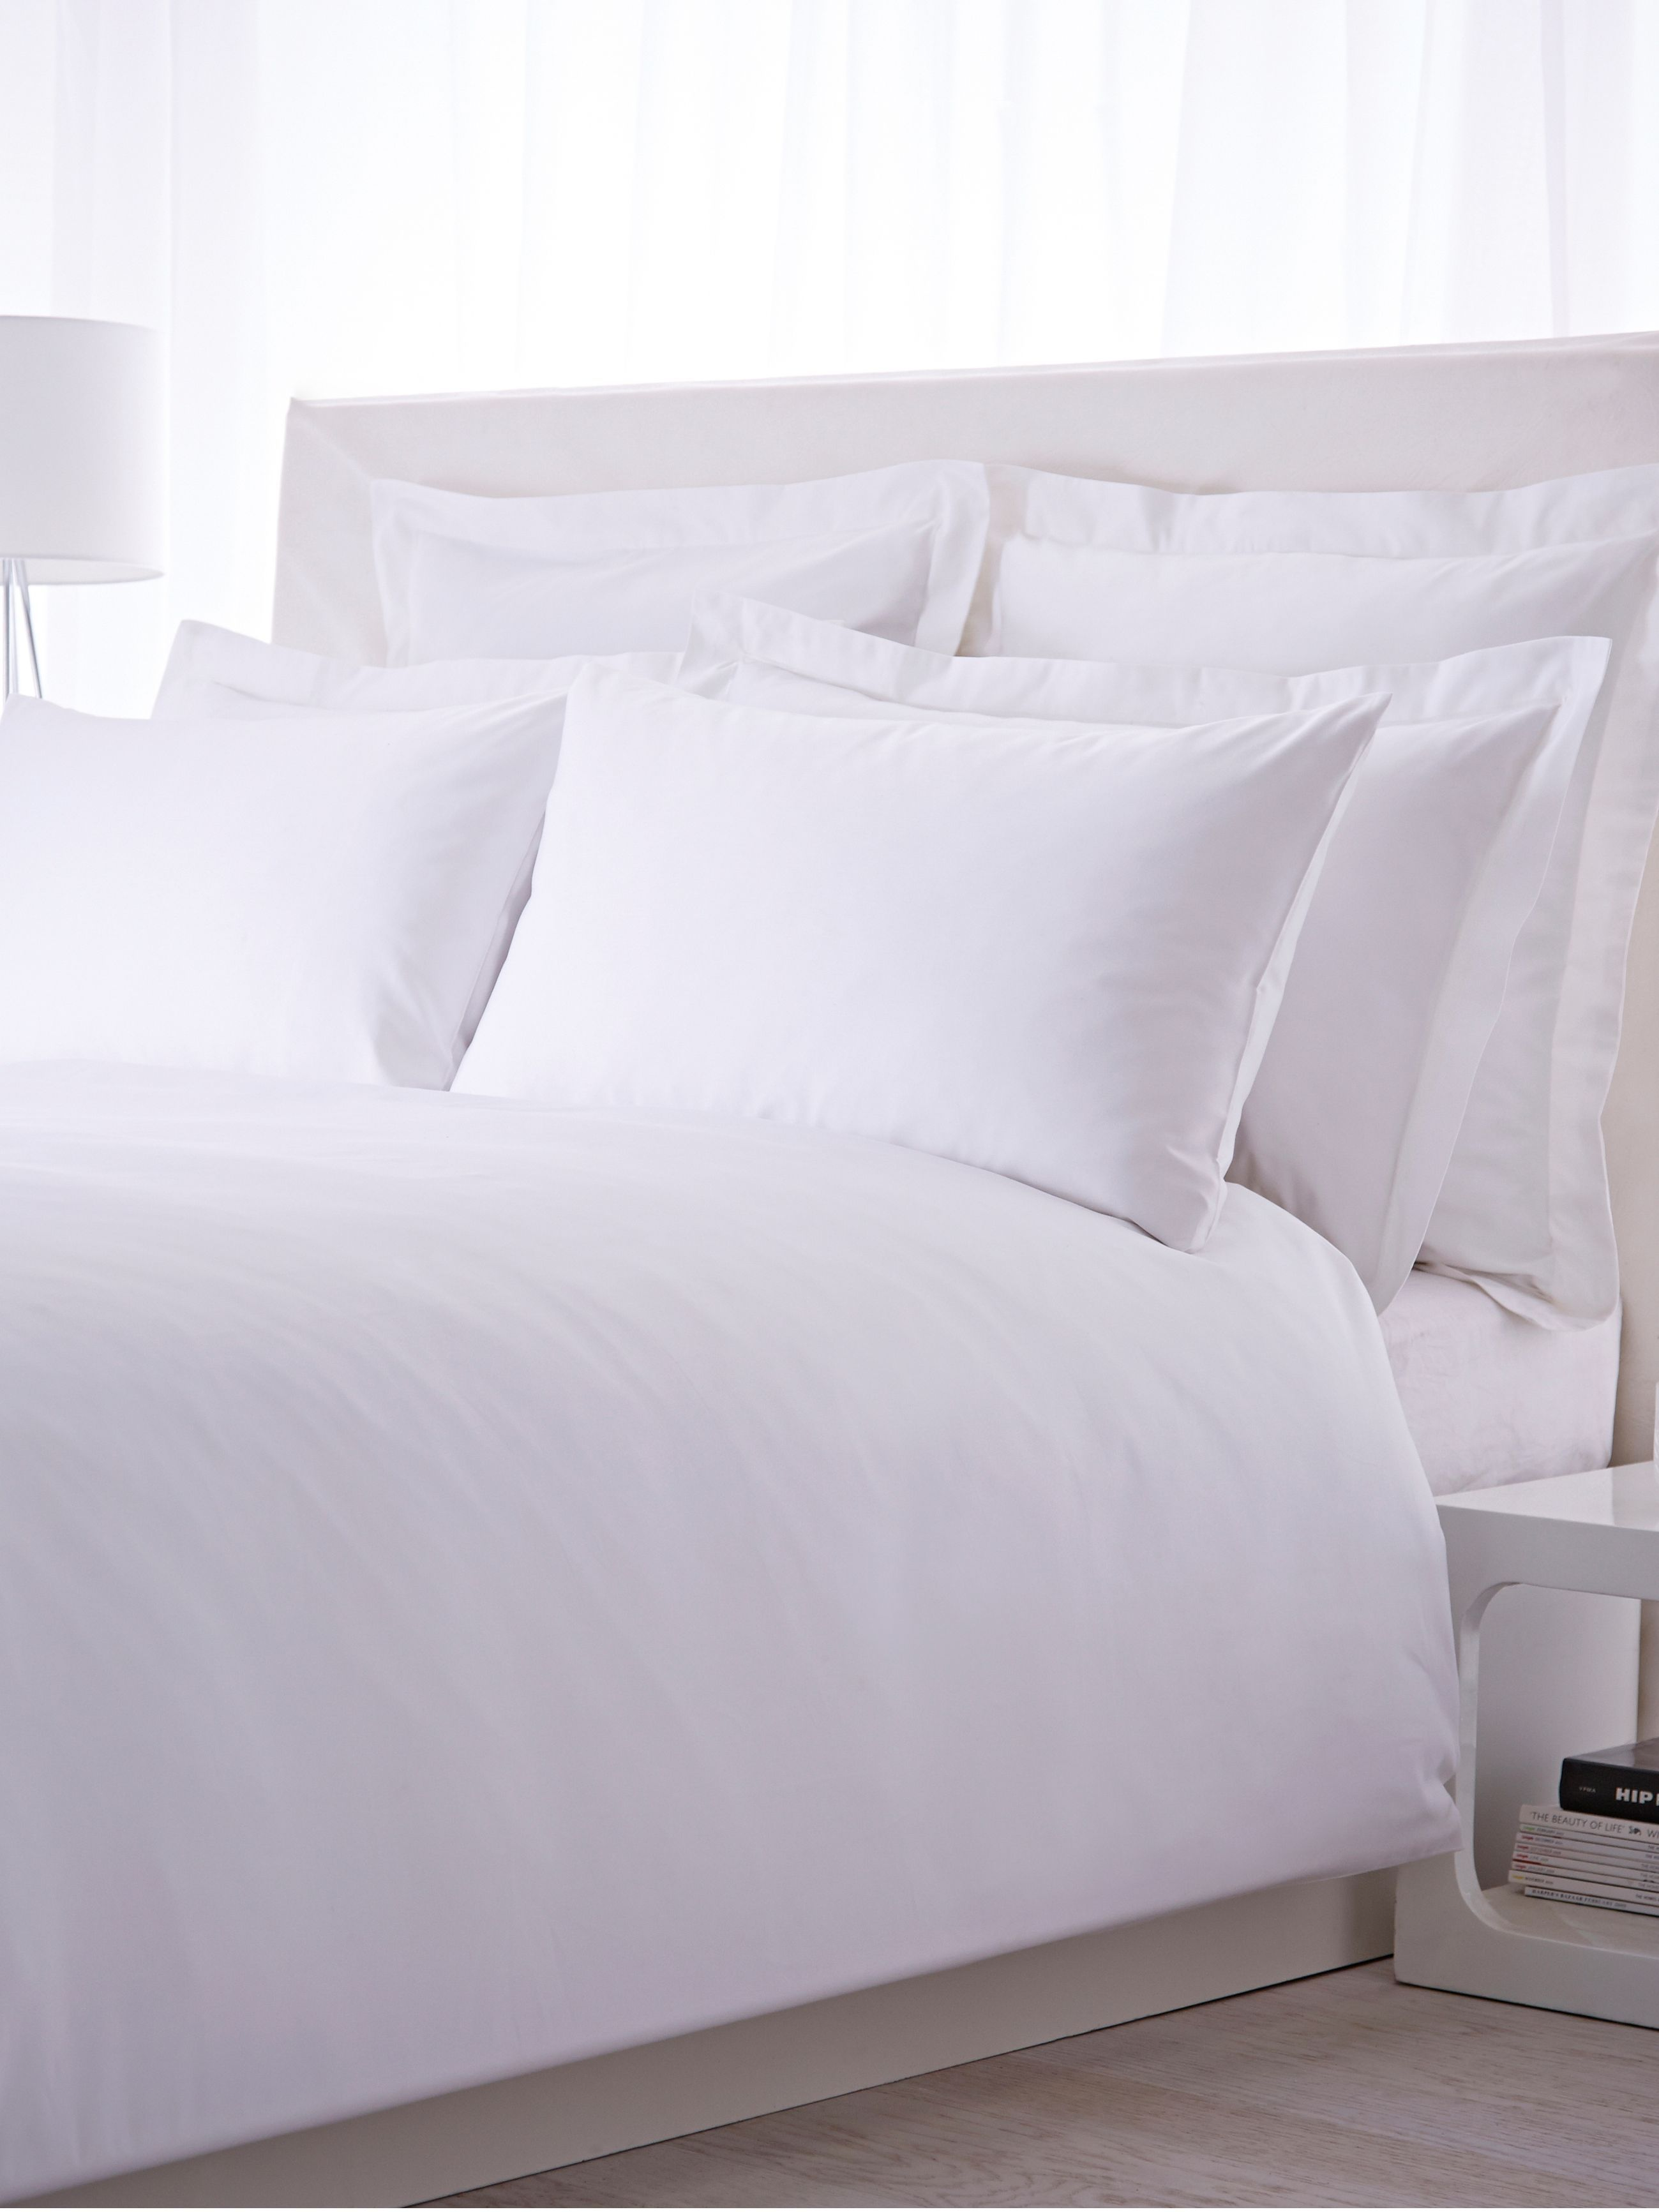 House Of Fraser Bed Linen Sets Part - 27: Luxury Hotel Collection 500 Thread Count Kingsize Fitted Sheet Pair White -  For All The Latest Ranges From The Best Brands Go To House Of Fraser